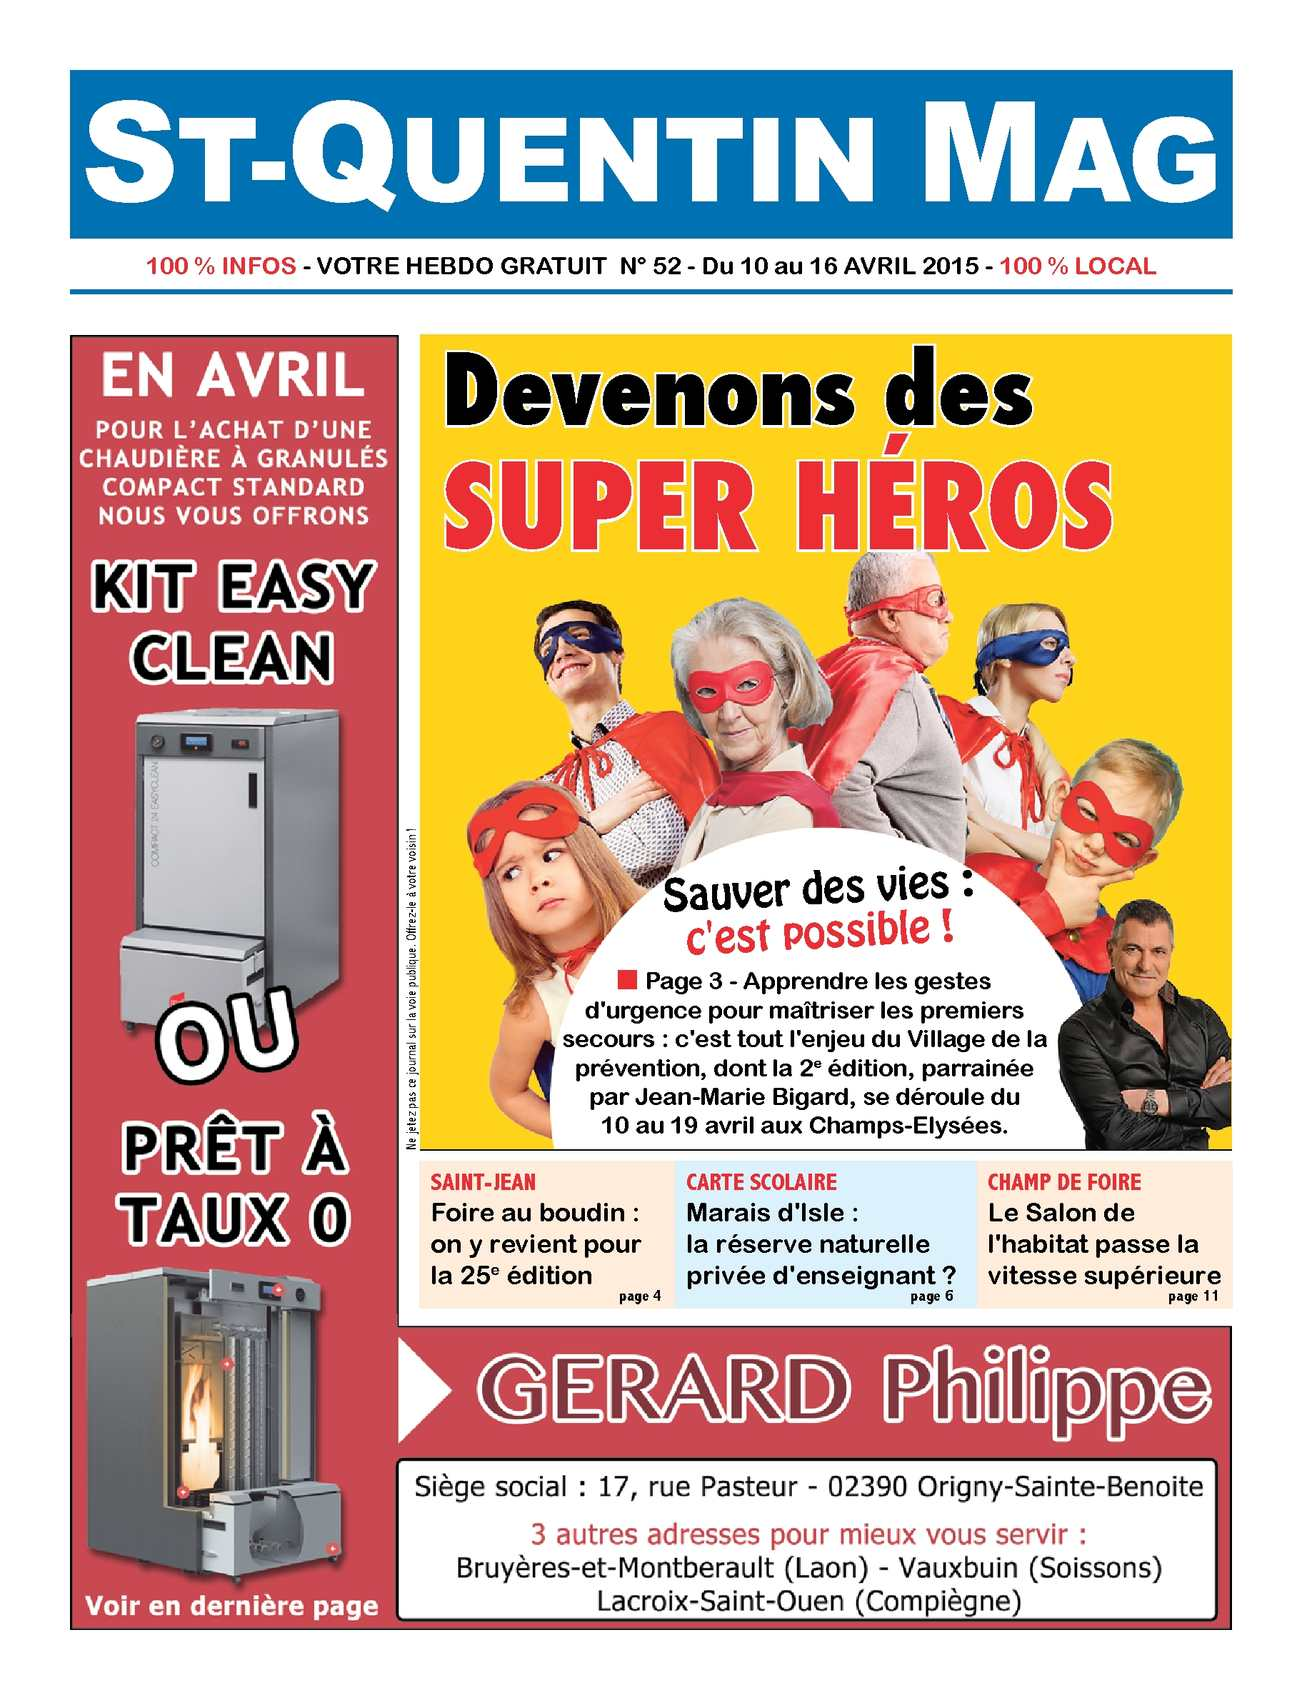 Calam o st quentin mag n 52 for Foire de st quentin